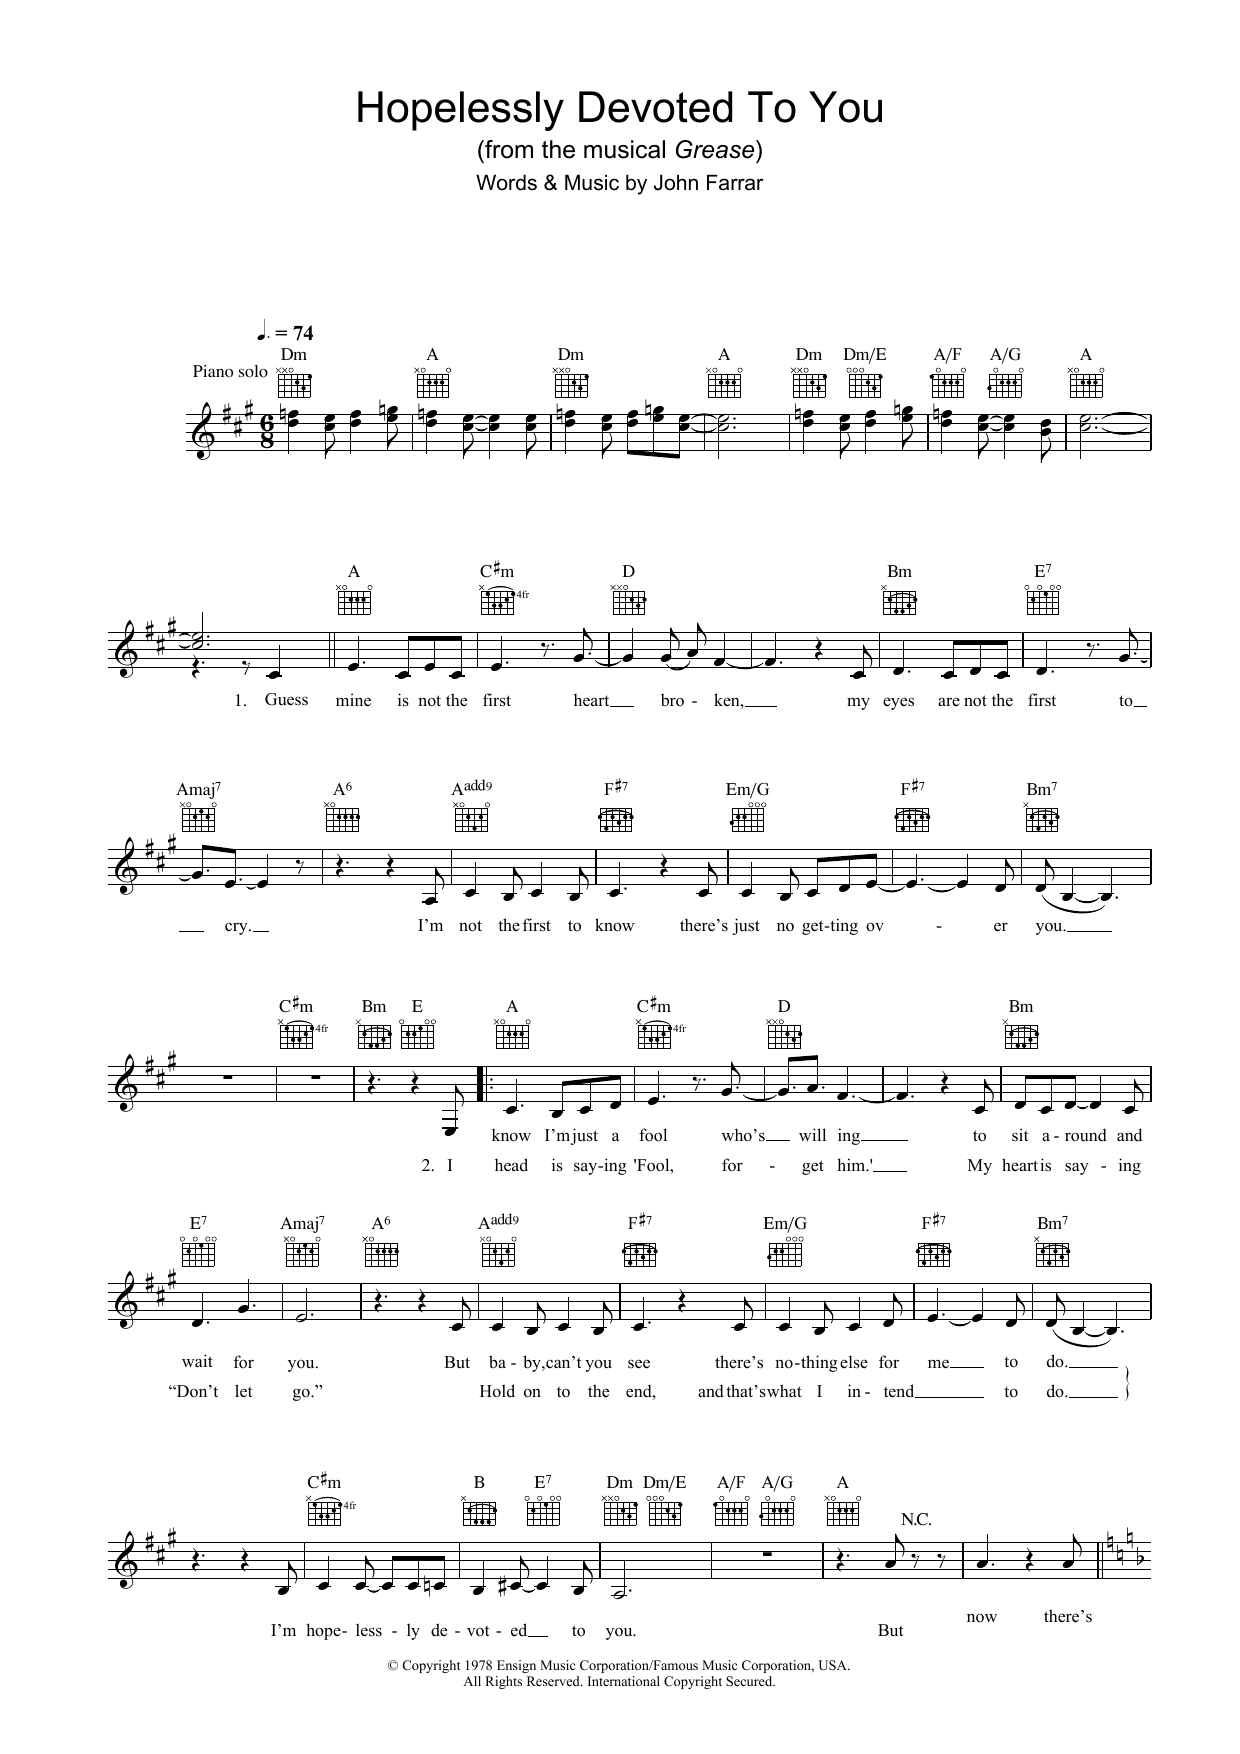 Hopelessly Devoted To You (from Grease) - Sheet Music to